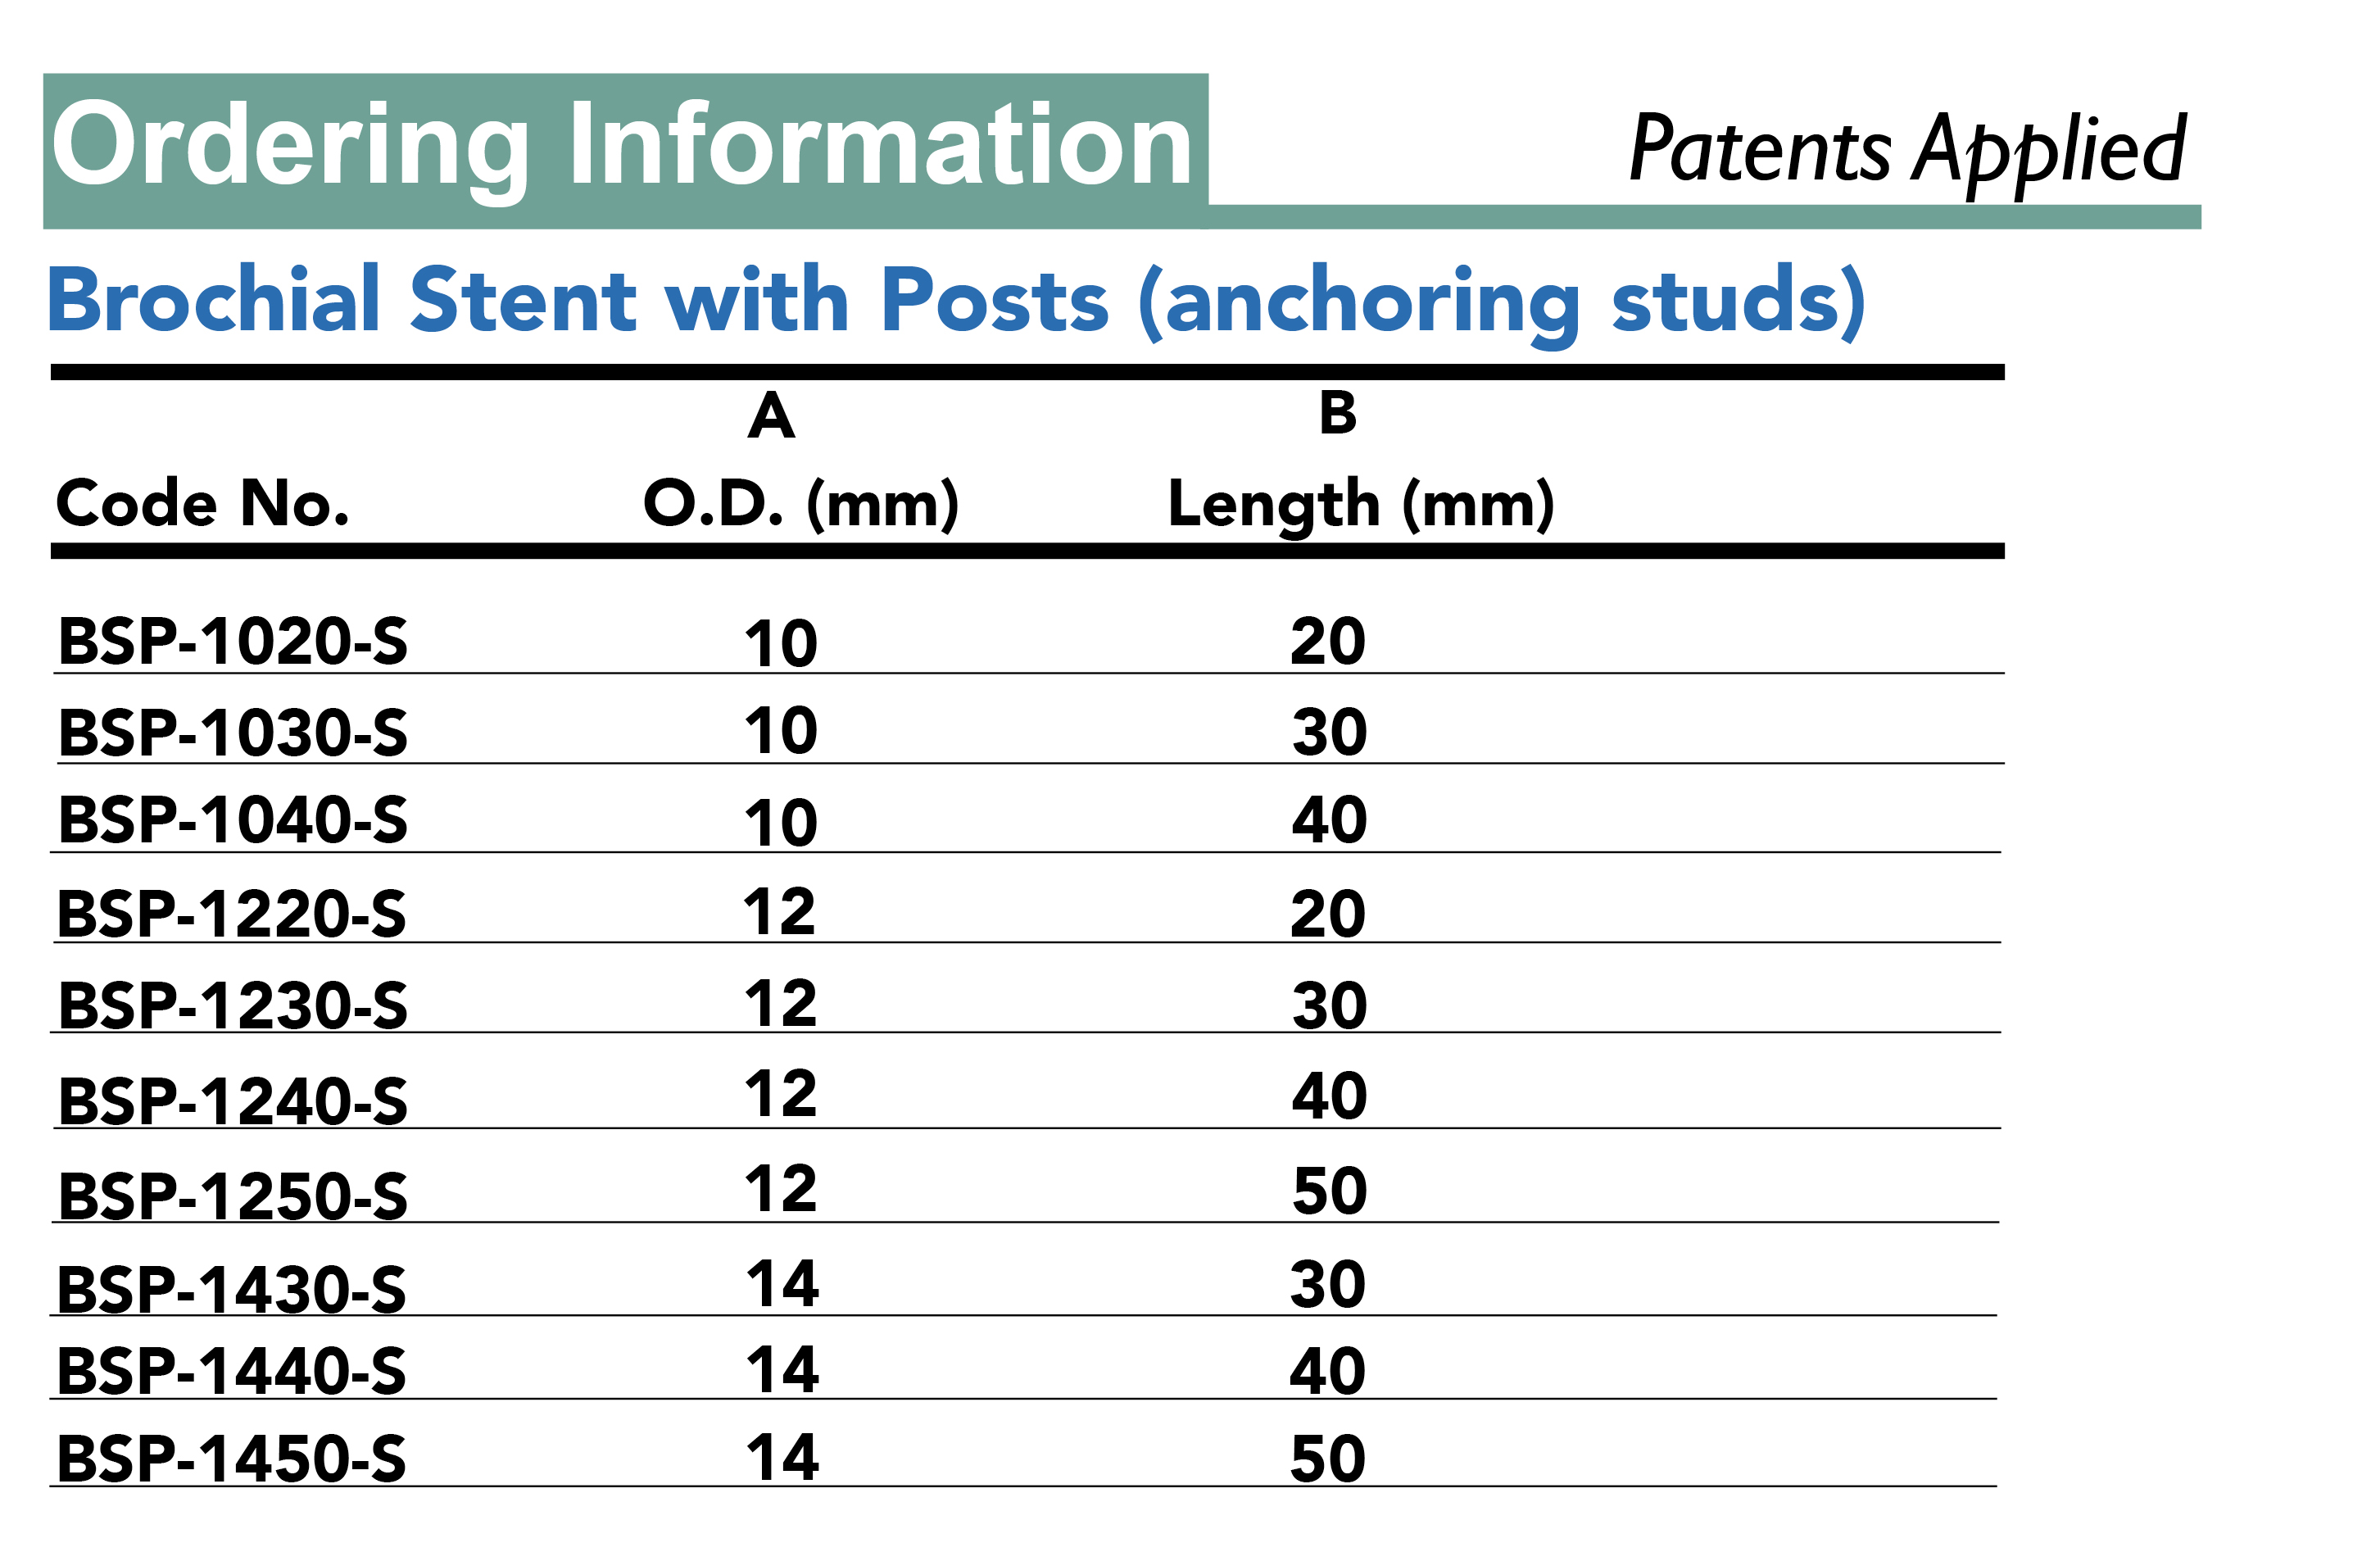 bronchial-stent-posts-ordering